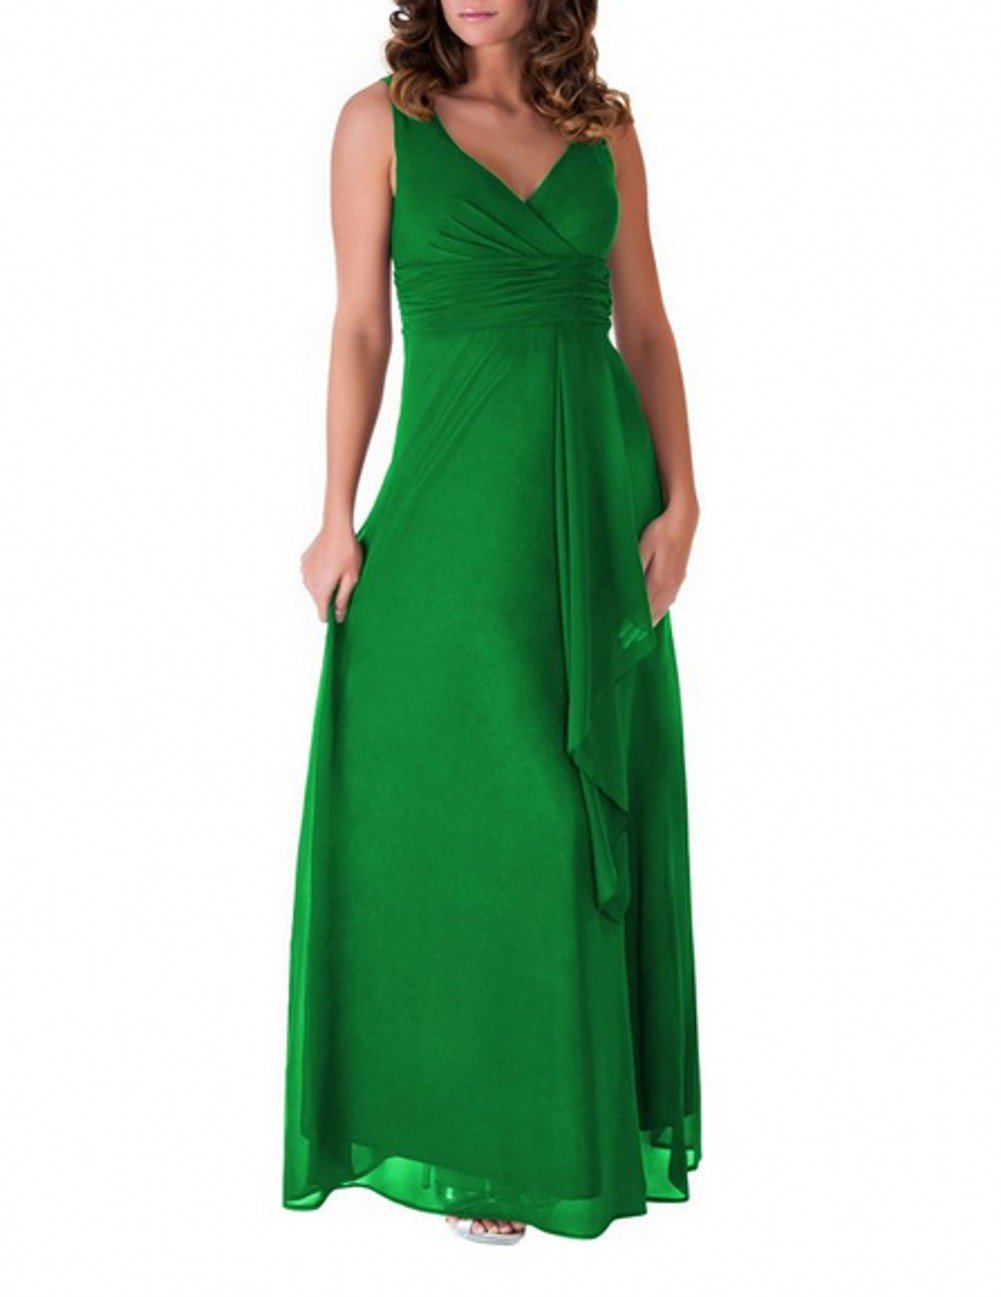 Love Dress V-Neck Long Evening Gown Bridesmaid Formal Prom Party Dress Green Us 16